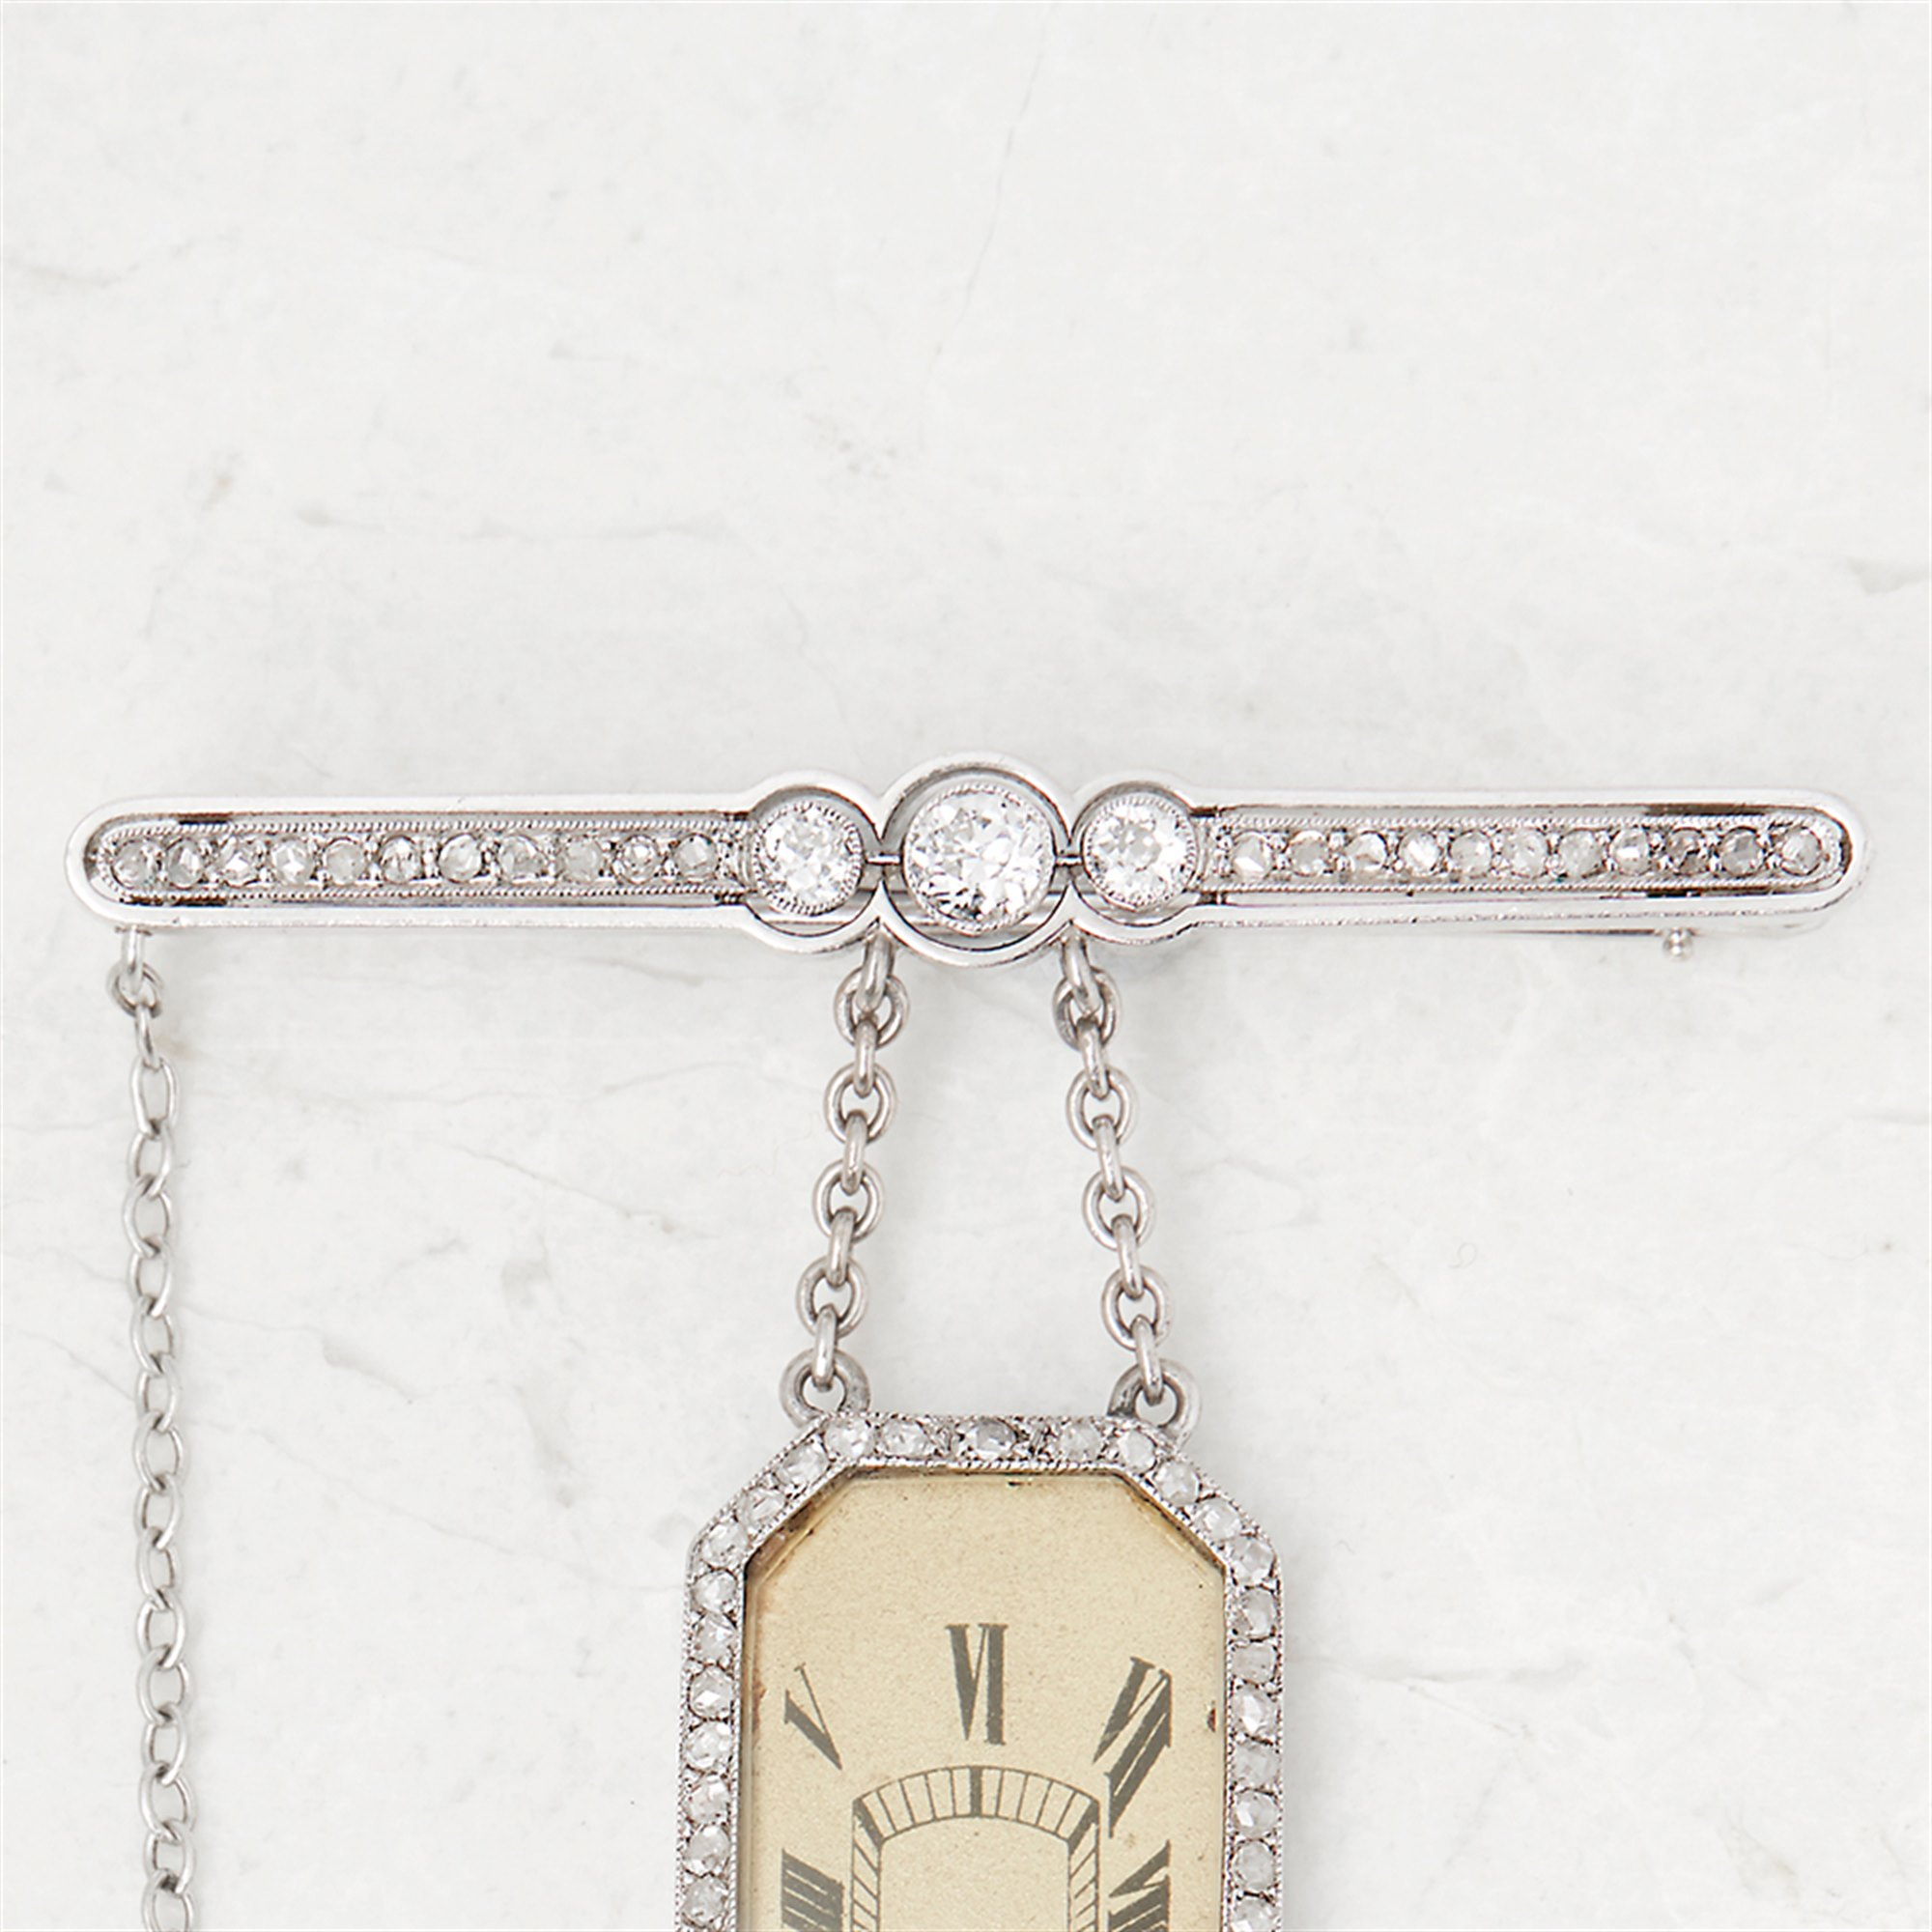 Cartier Platinum Diamond Set Rare Vintage Brooch Watch